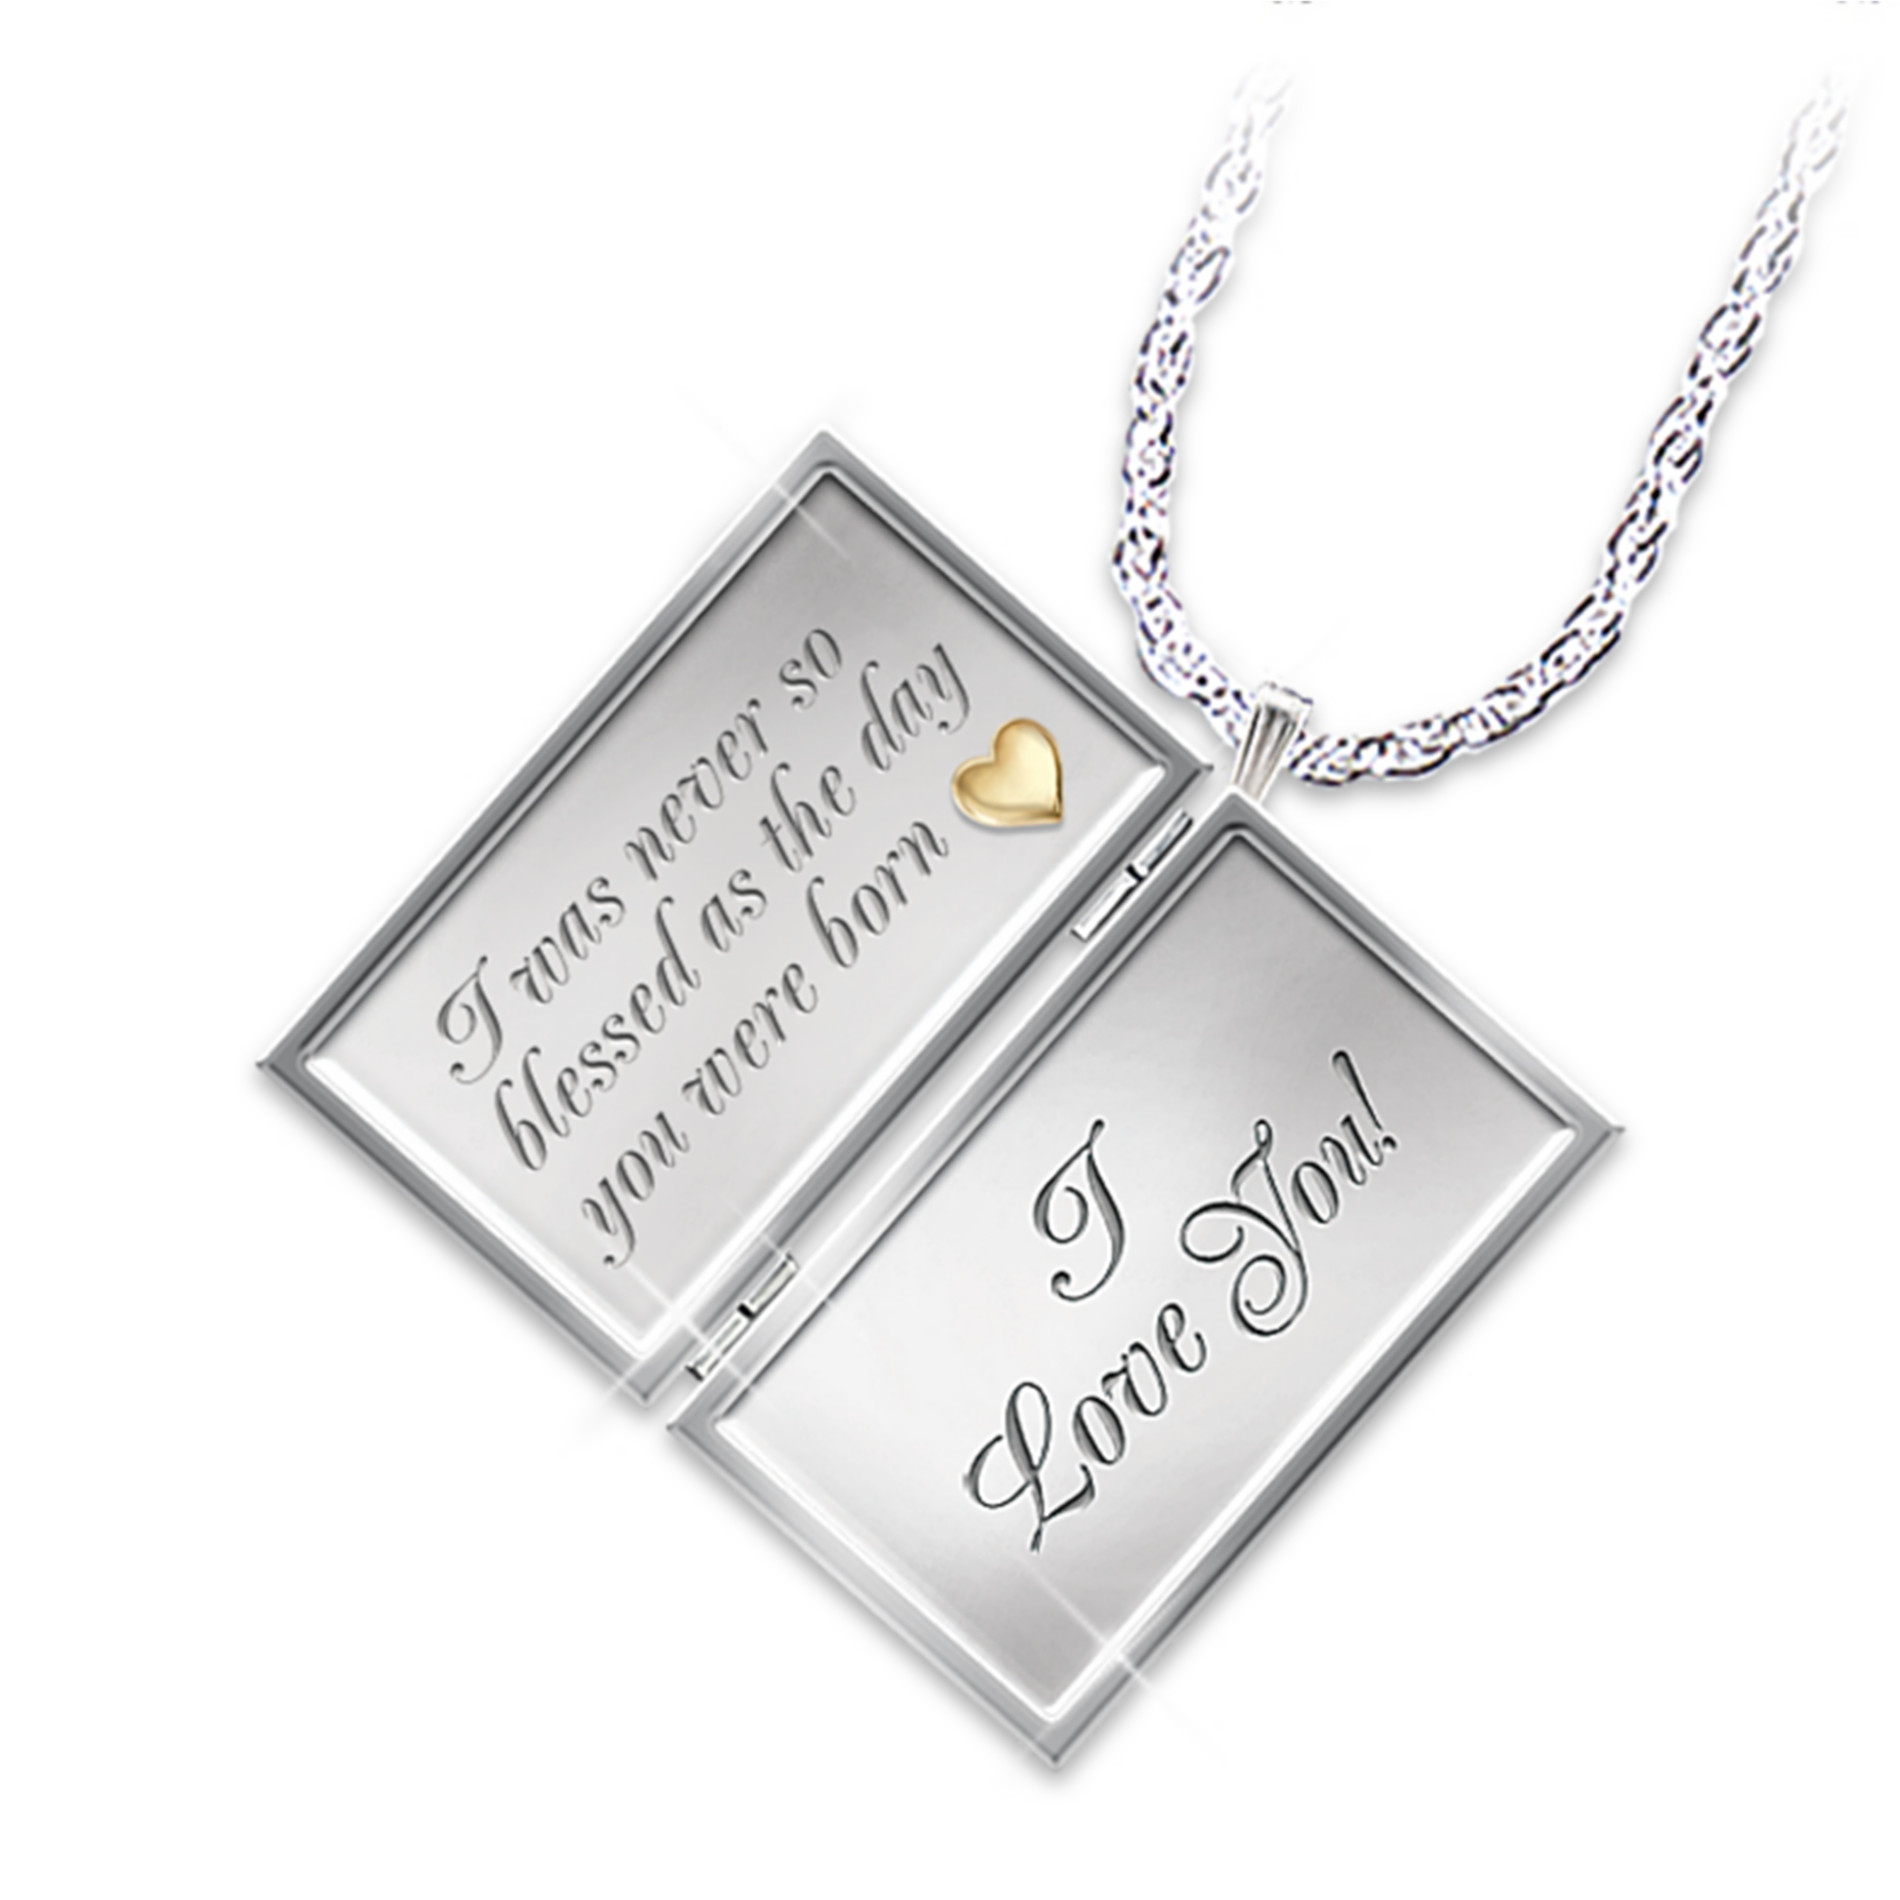 The Bradford Exchange Dear Daughter Letter Of Love Engraved Diamond Locket Necklace at Sears.com